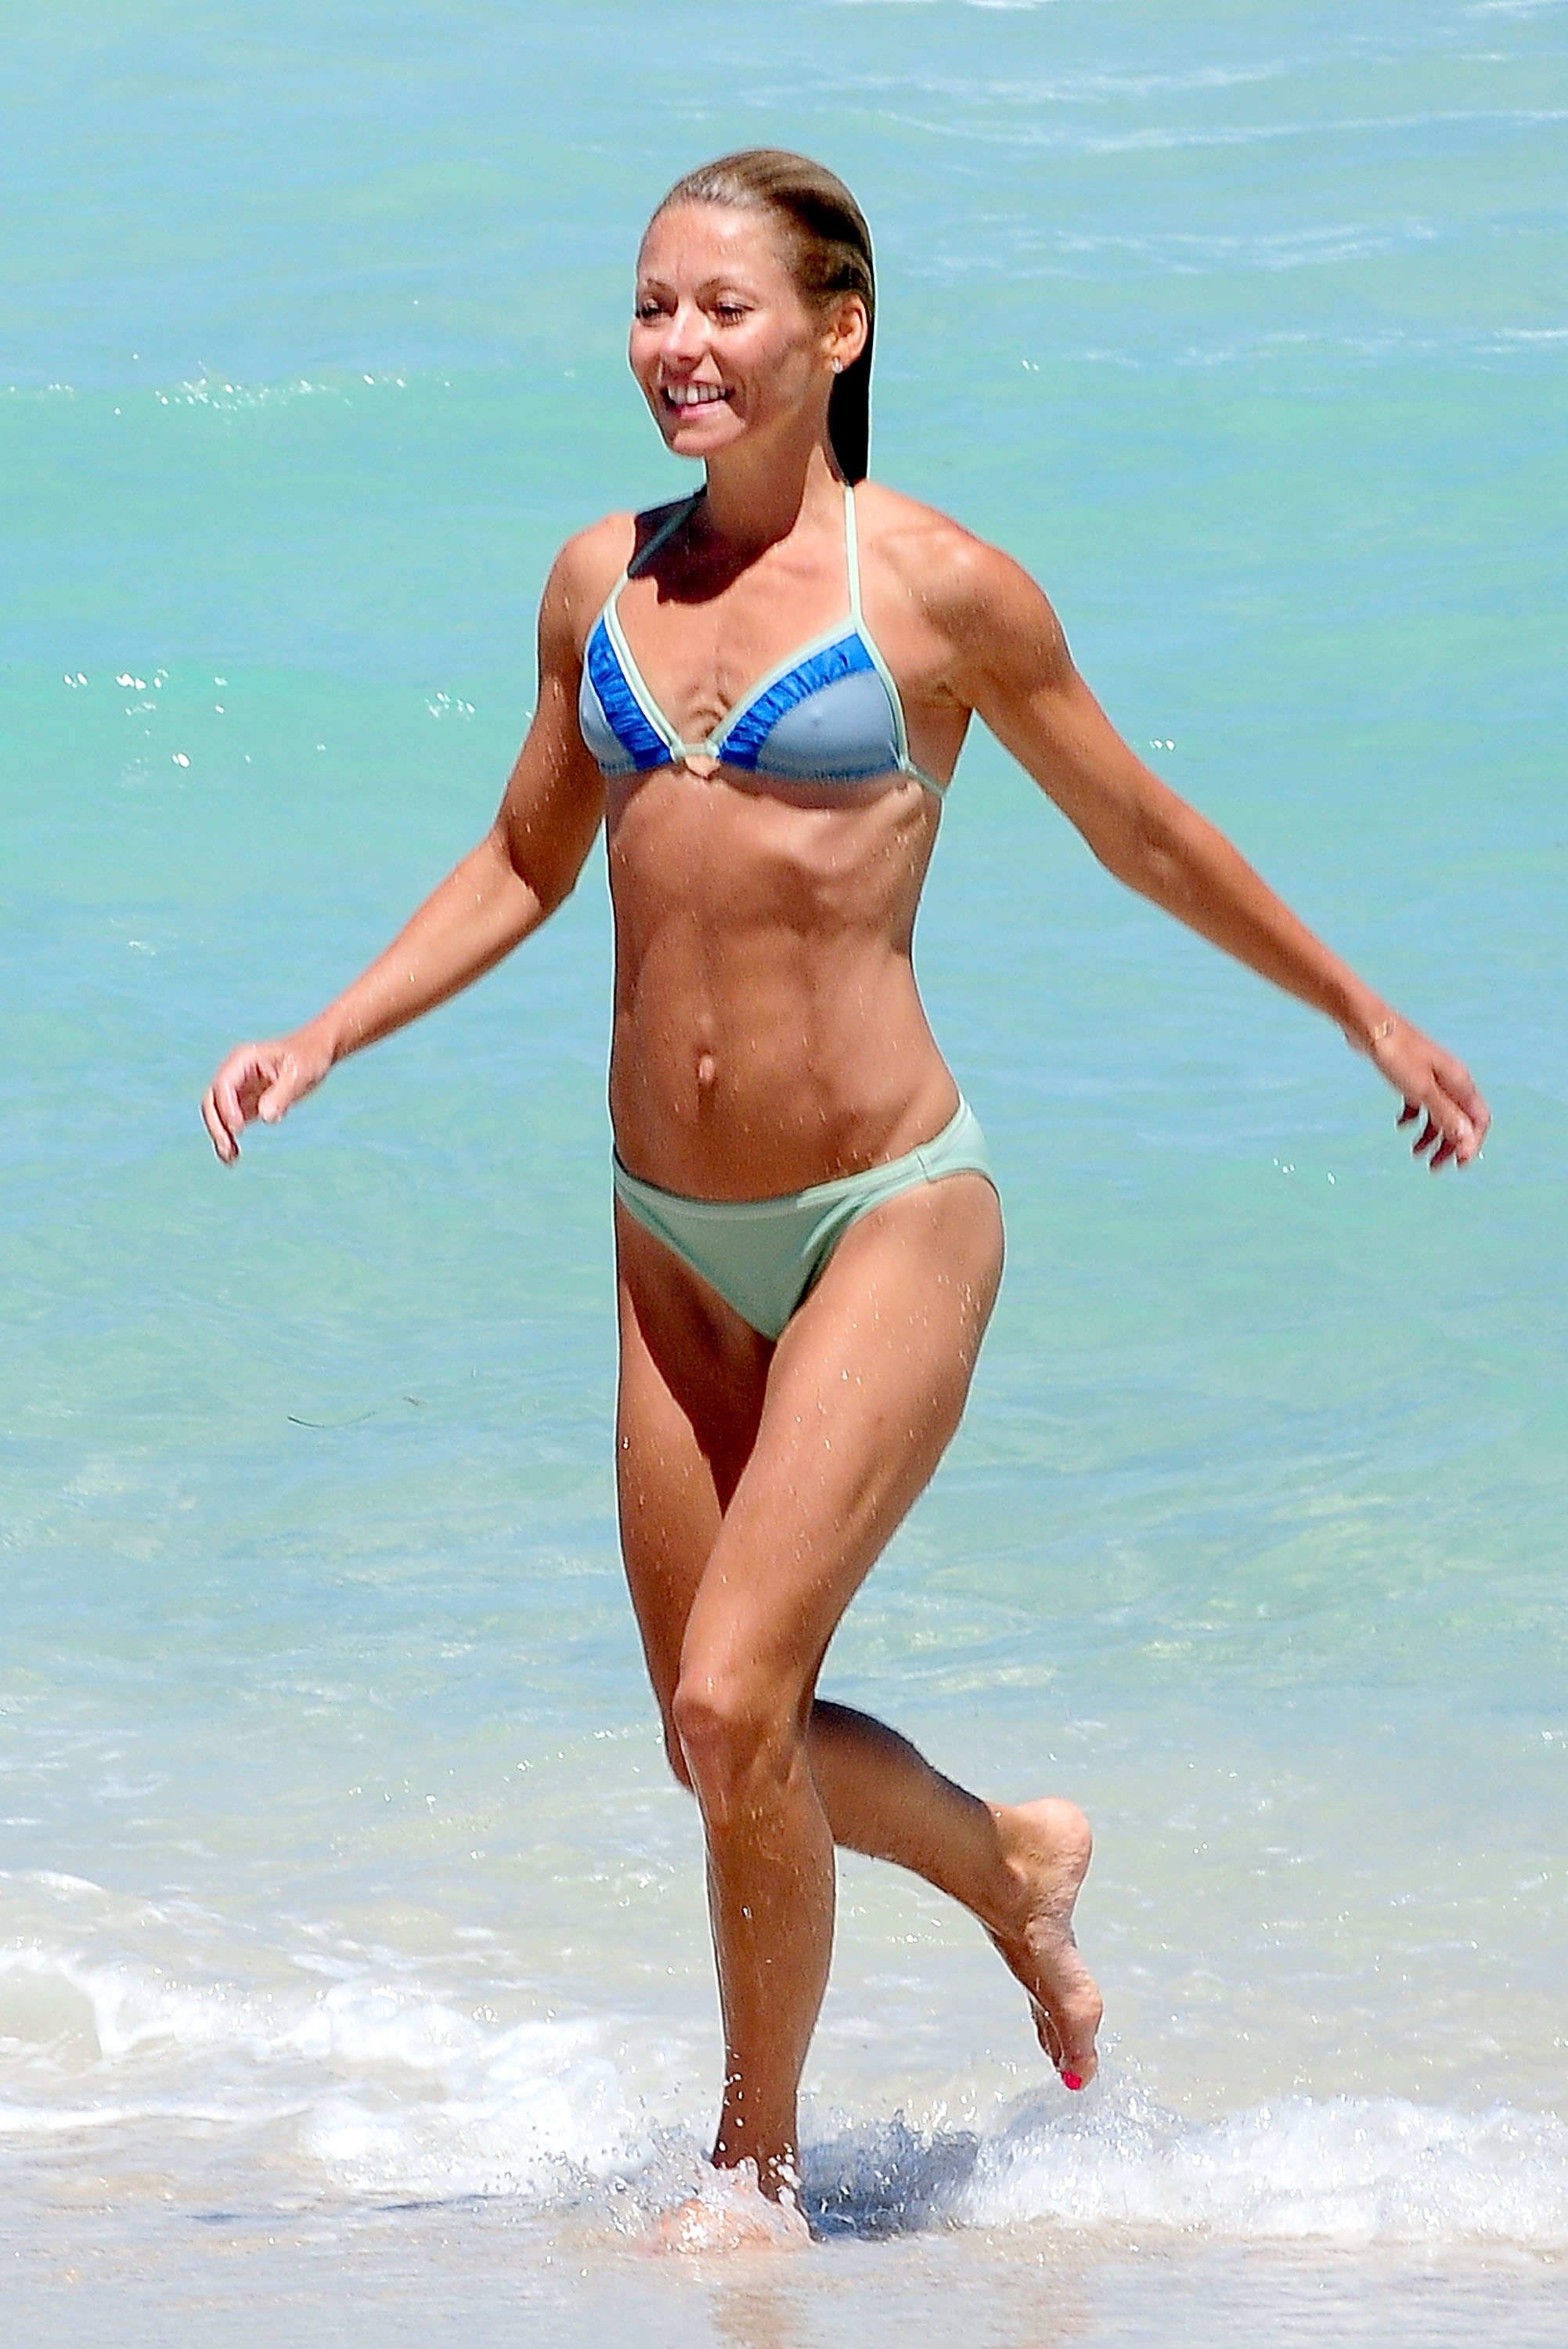 With her slim body and Regular blond hairtype without bra (cup size 32A) on the beach in bikini